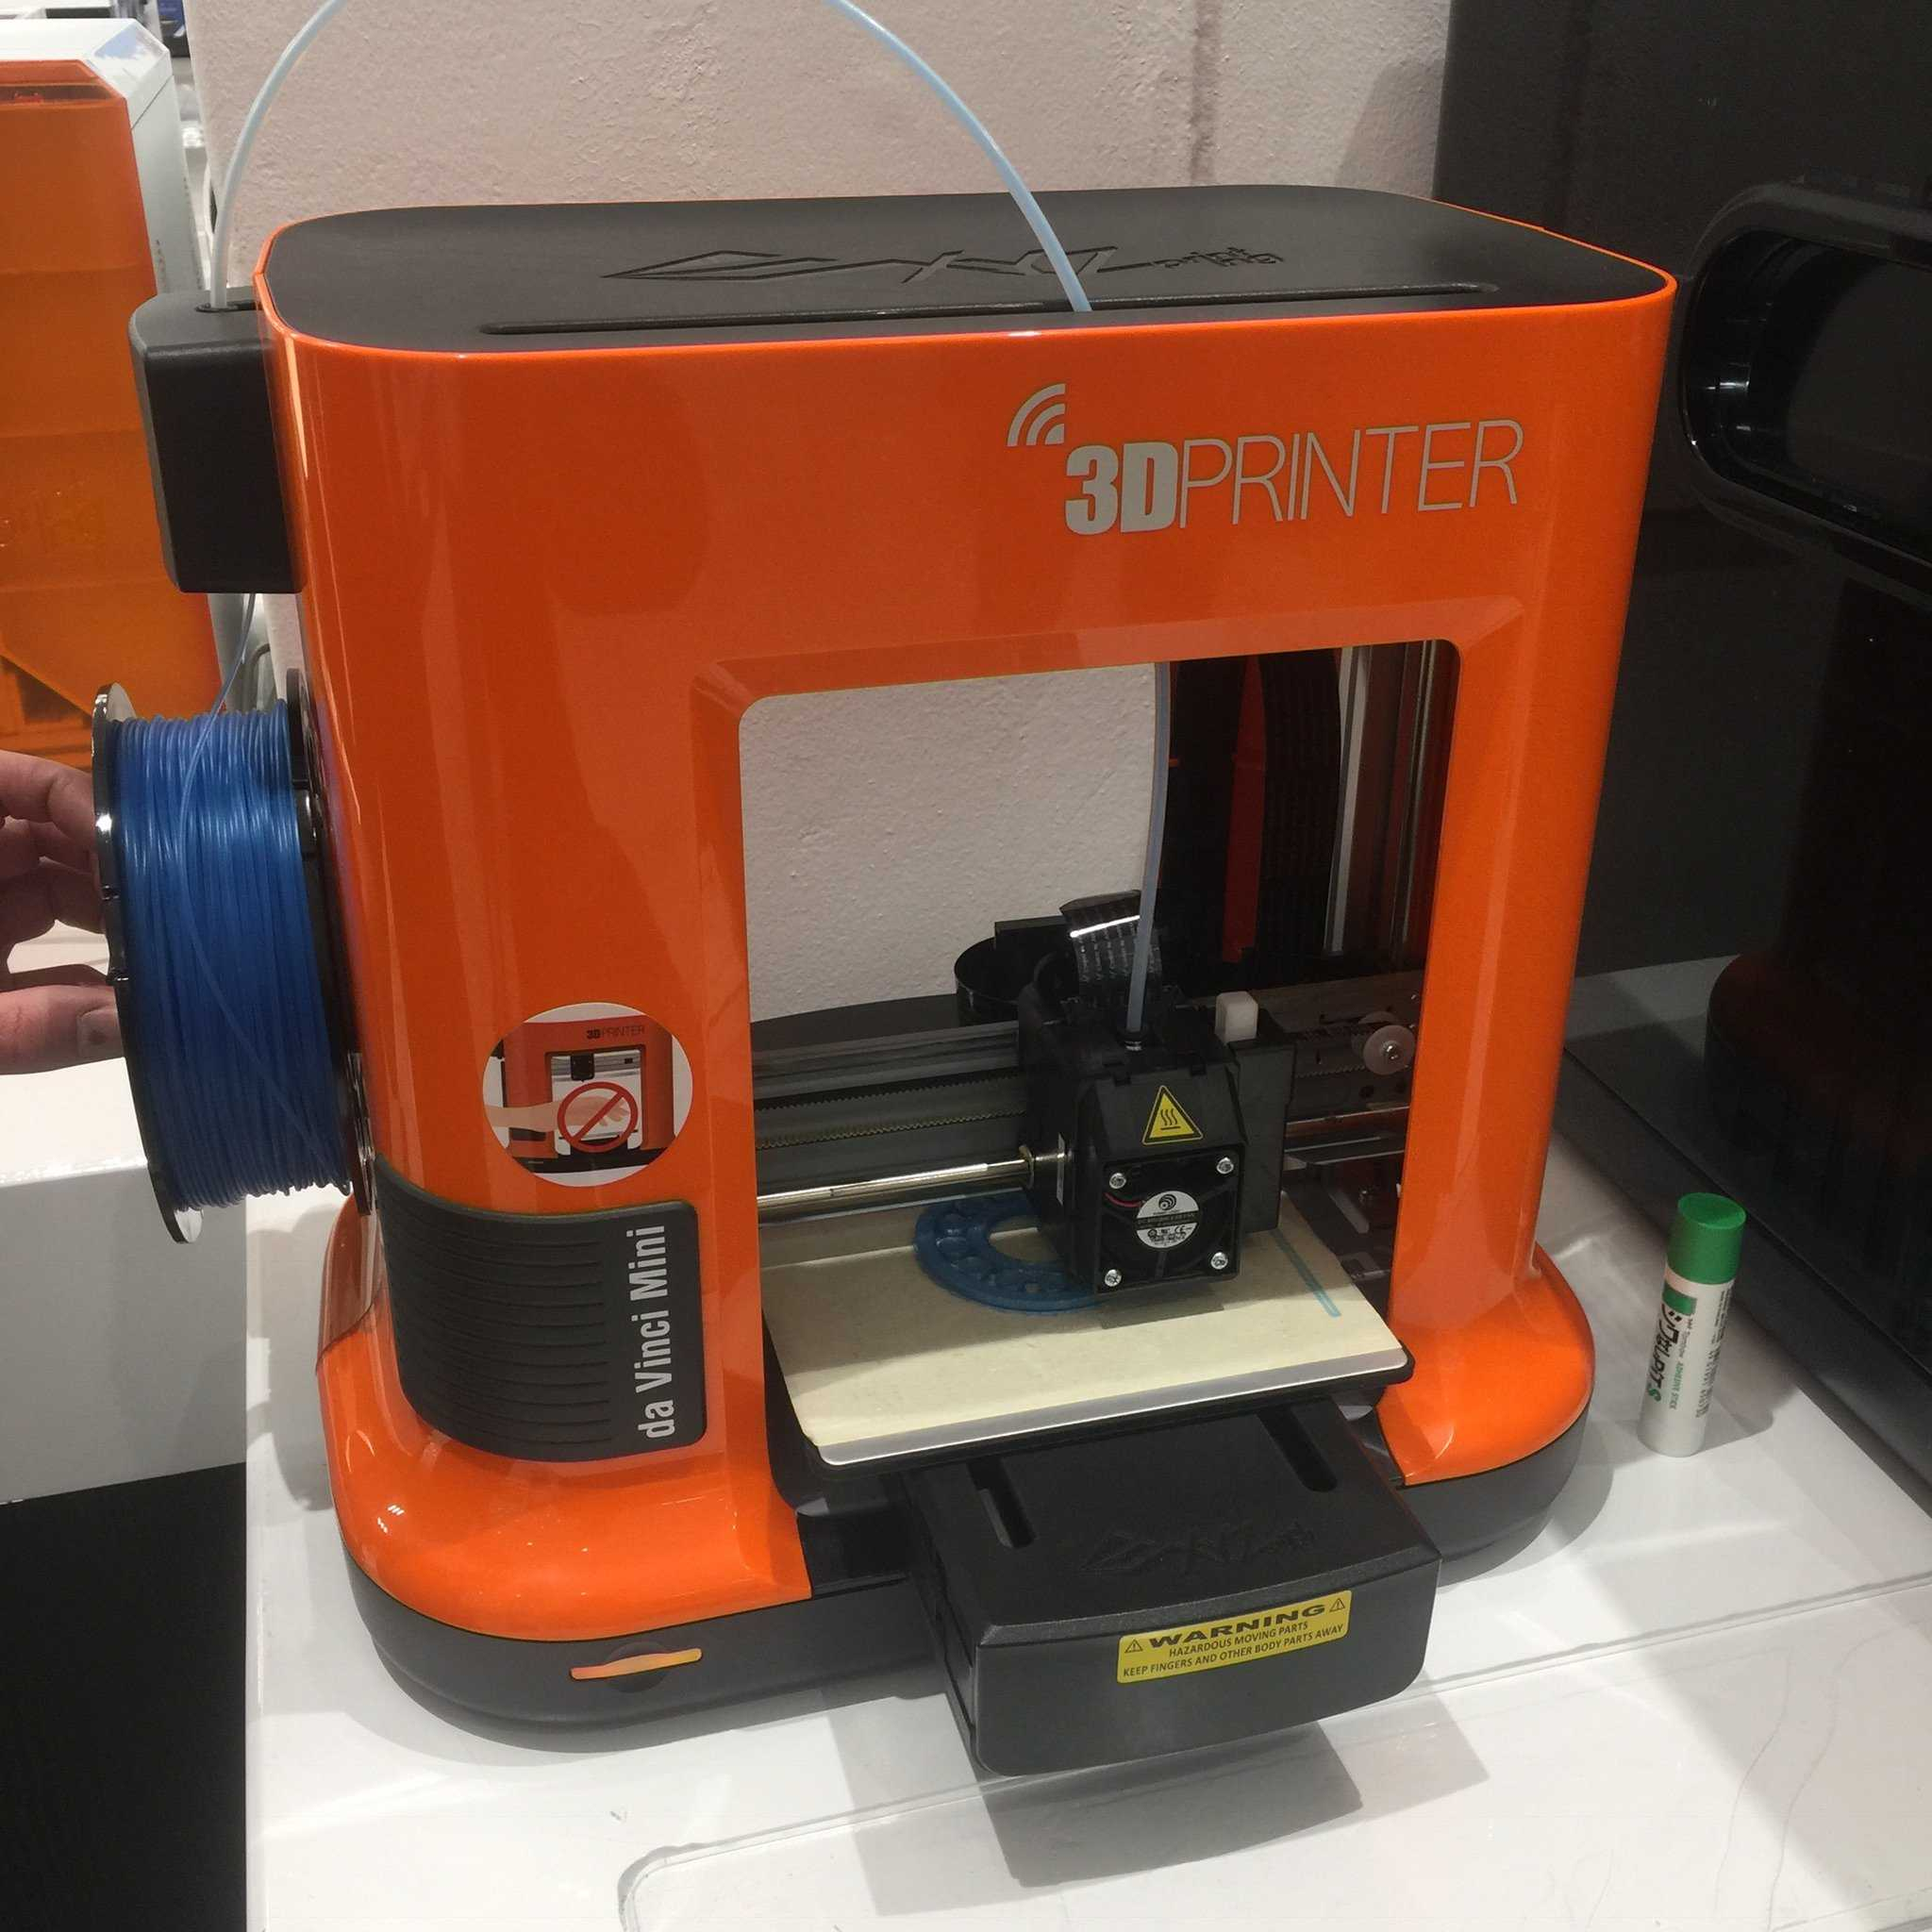 DionWired Brings Drones, 3D Printers And Virtual Reality